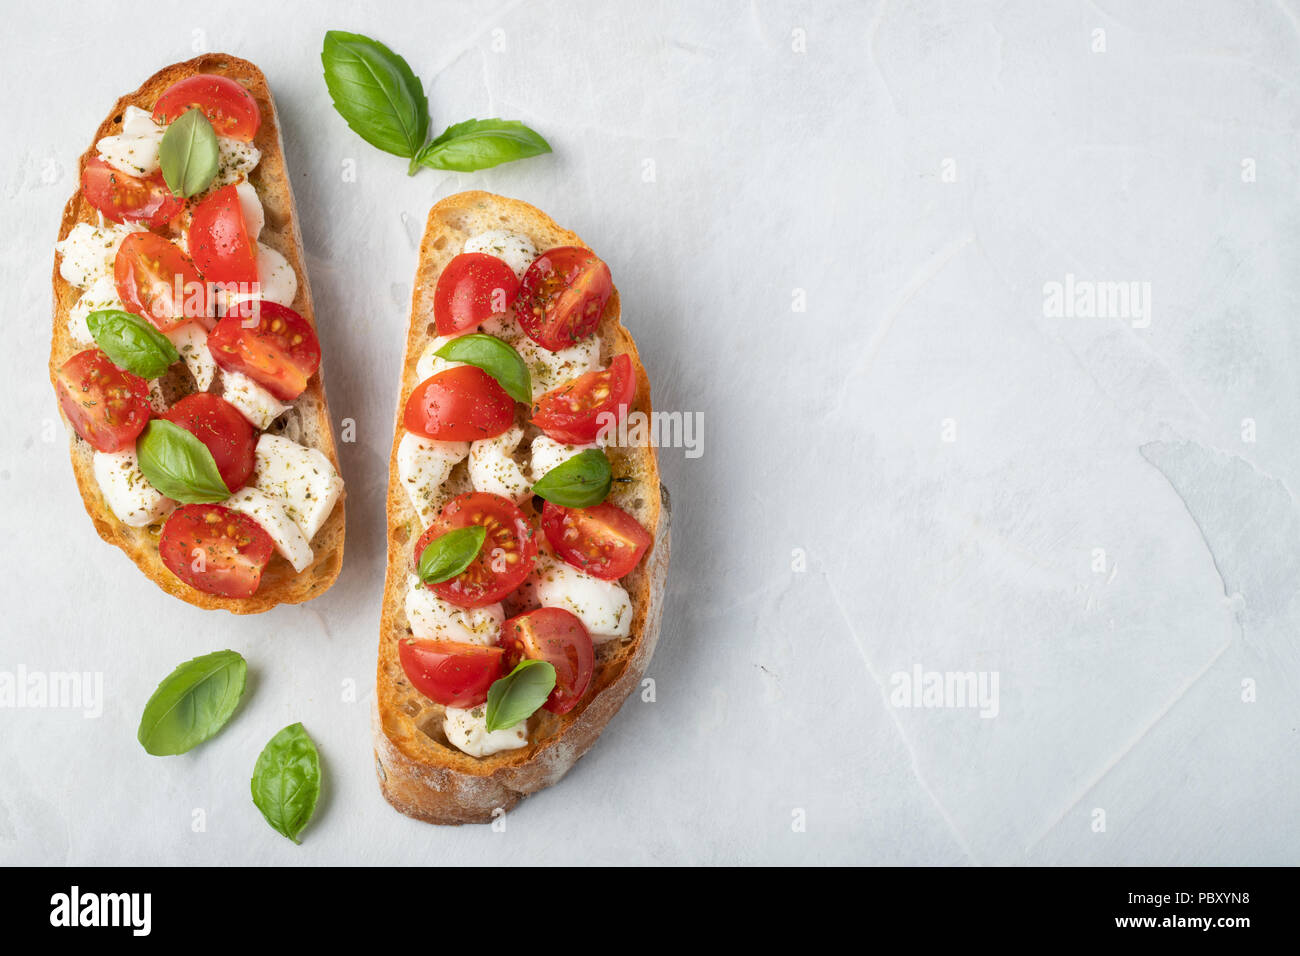 Bruschetta with tomatoes, mozzarella cheese and basil on a light background. Traditional italian appetizer or snack, antipasto. Top view with copy spa - Stock Image